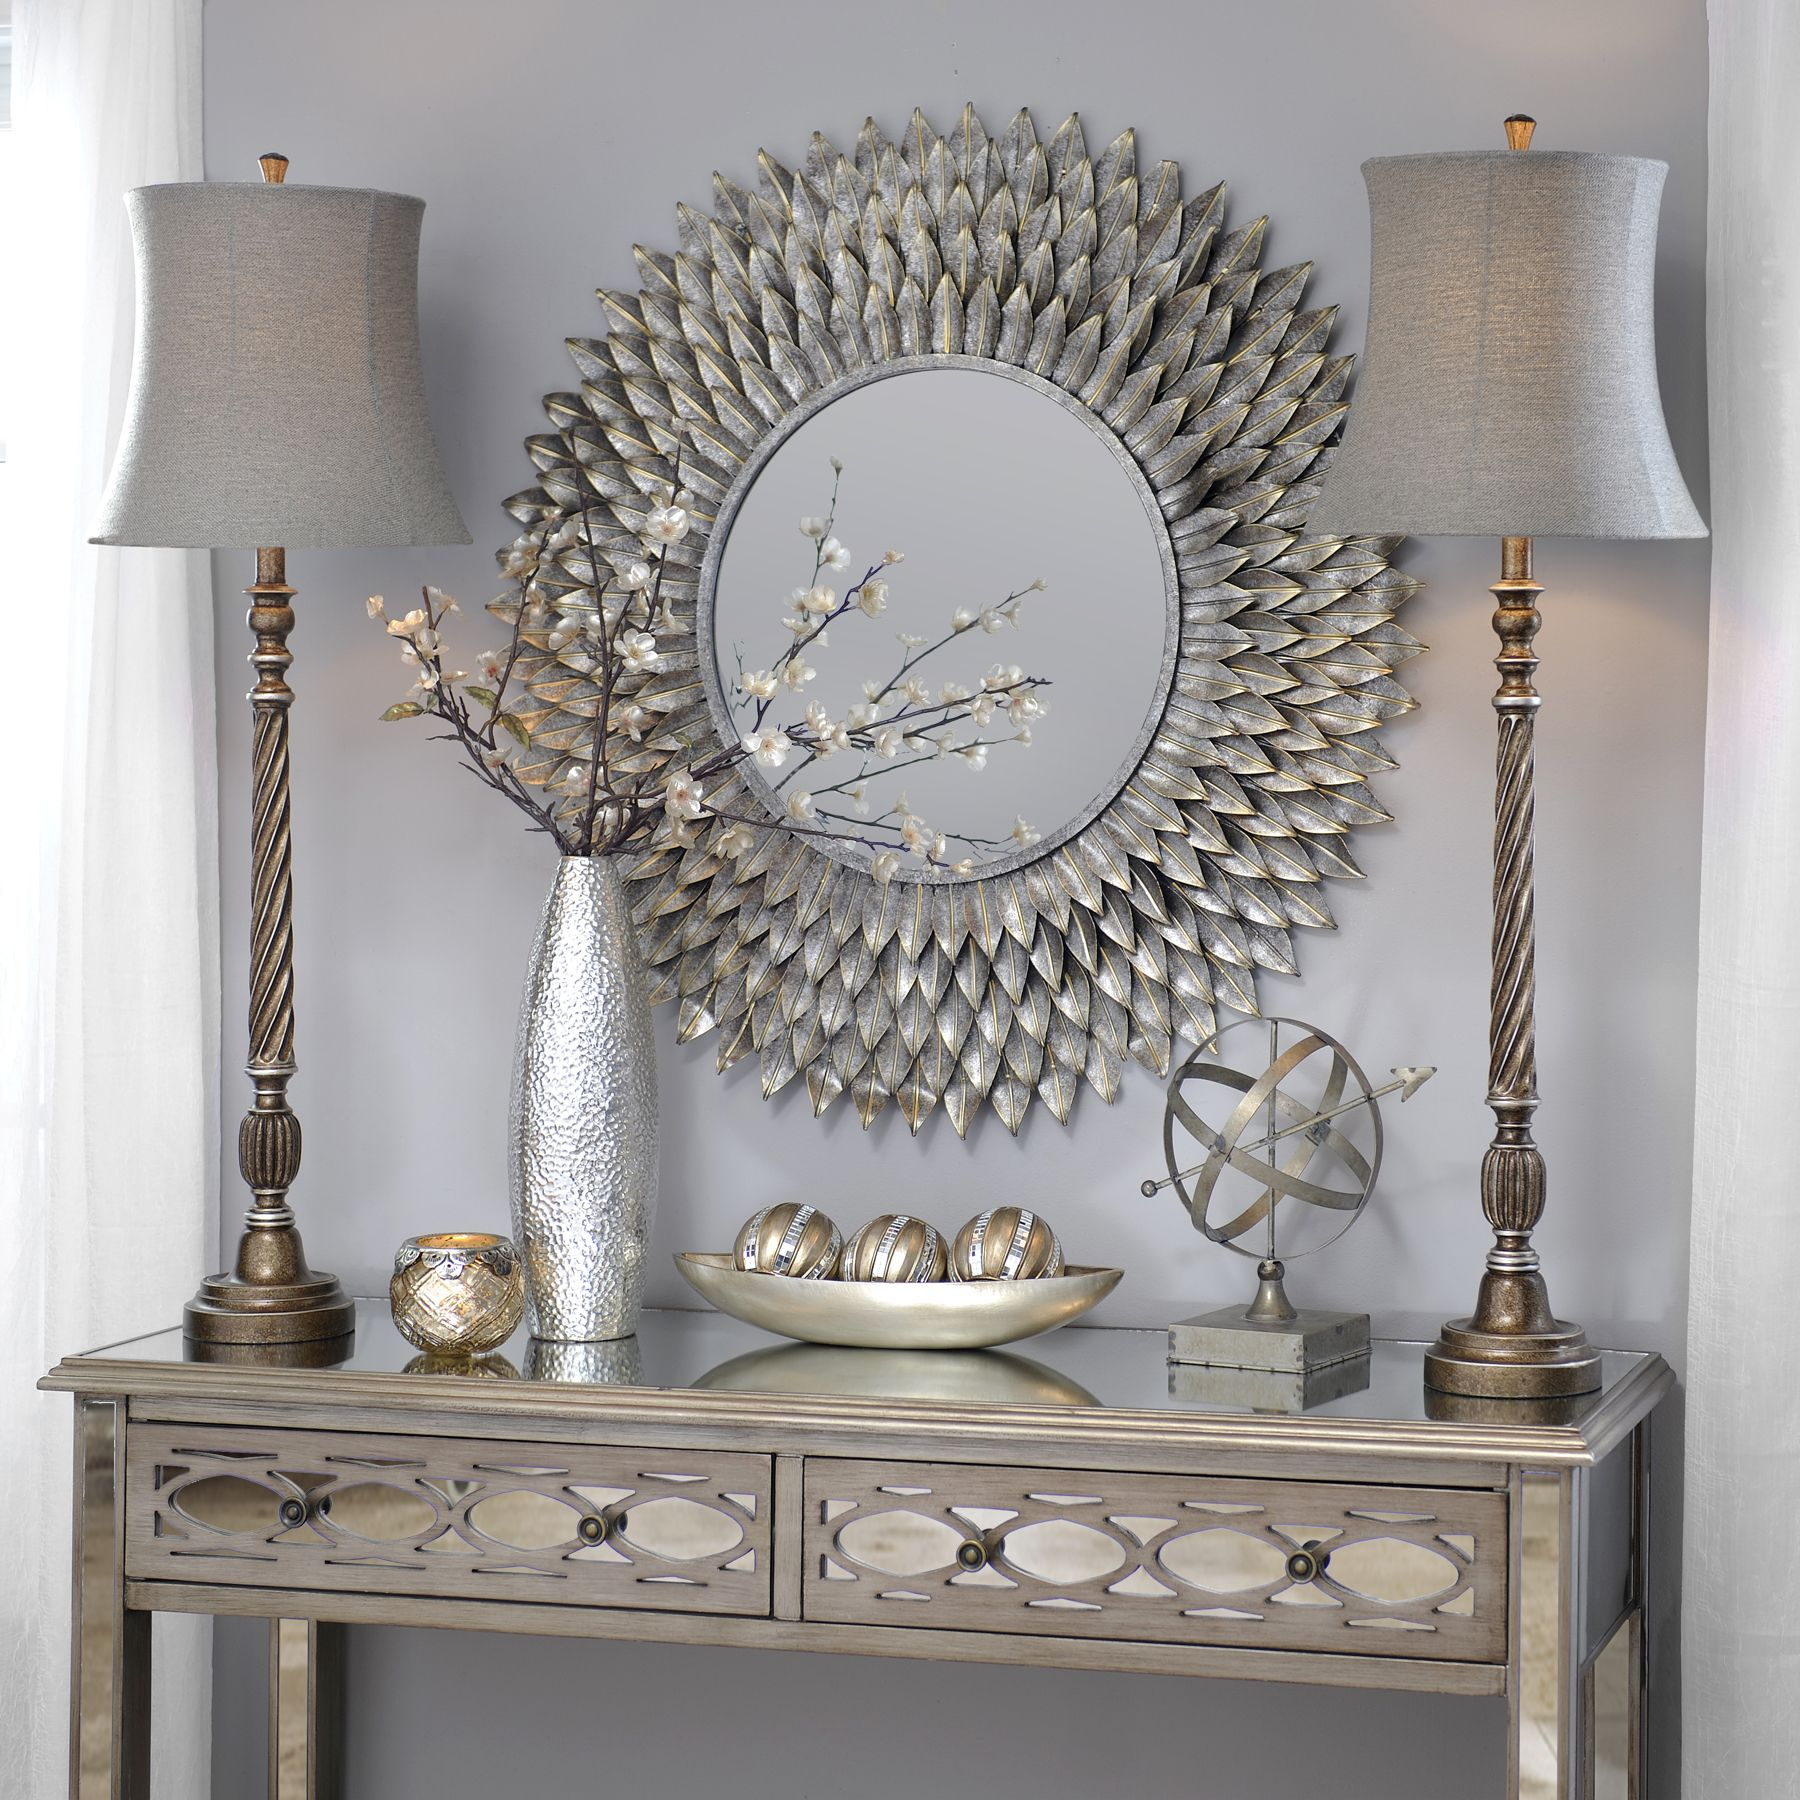 Adding Buffet Lamps Are Another Way To Add Style Your Home! Kirklandu0027s Has  Options In